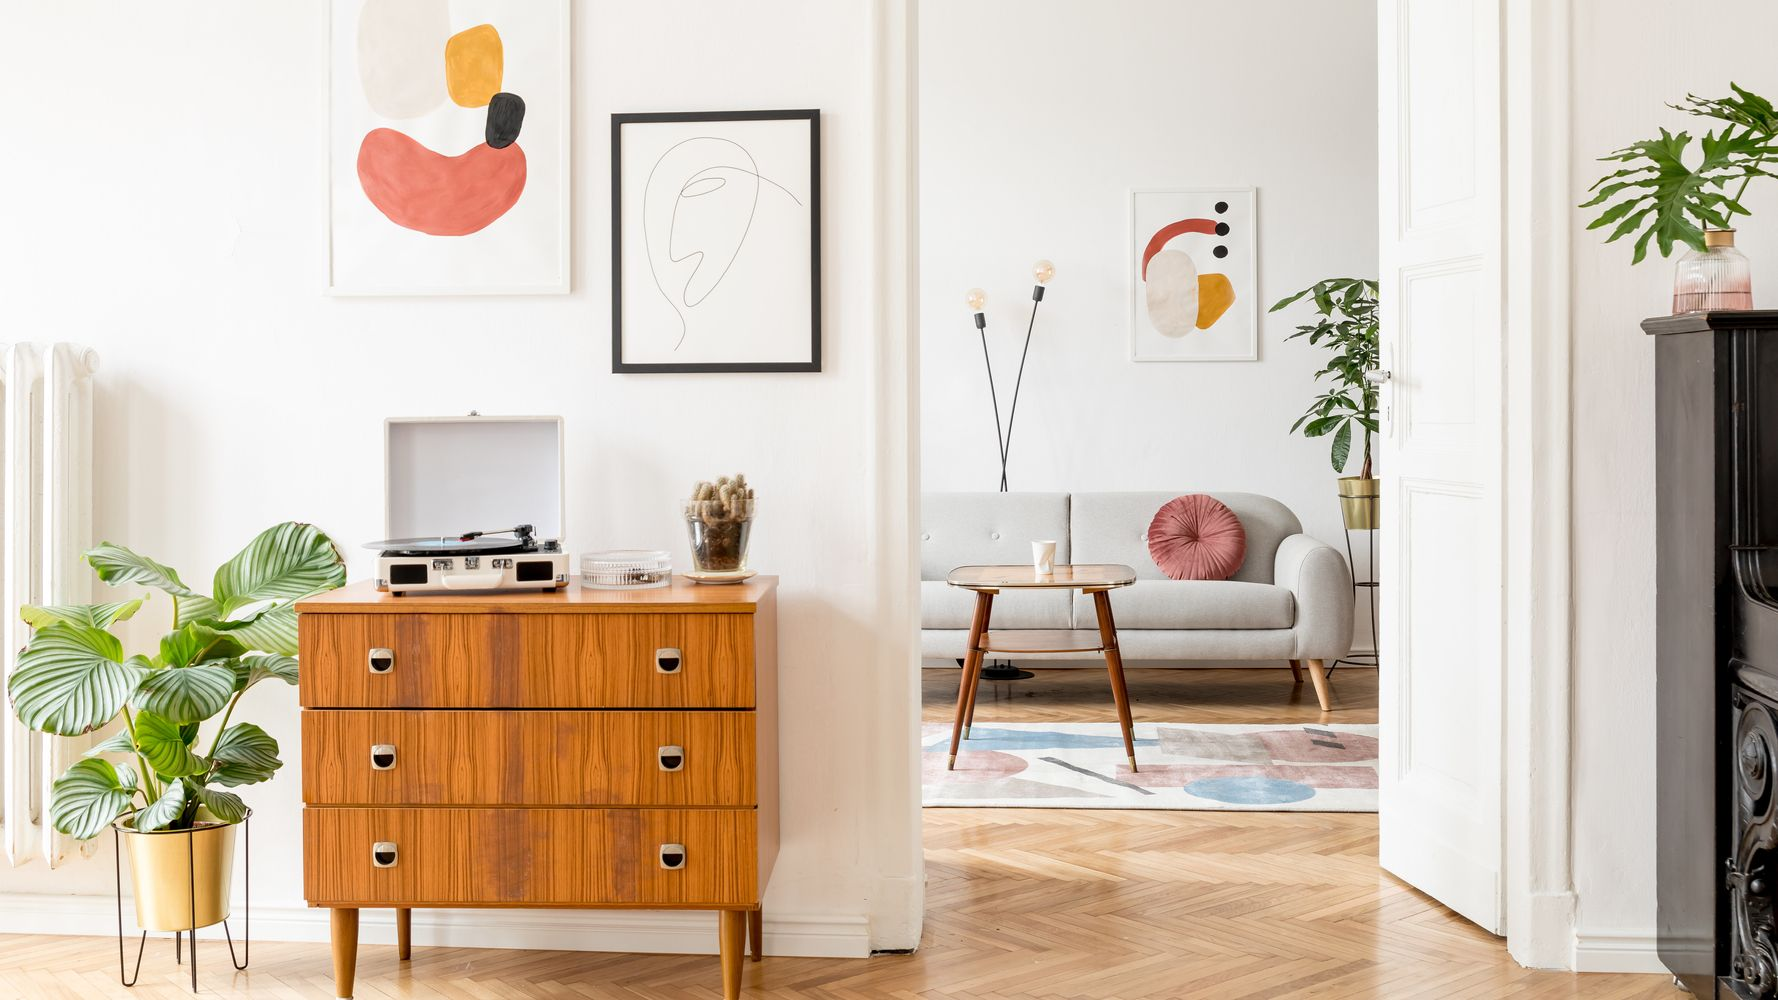 Wondrous 14 Furniture Stores Like West Elm To Buy Mid Century Modern Bralicious Painted Fabric Chair Ideas Braliciousco